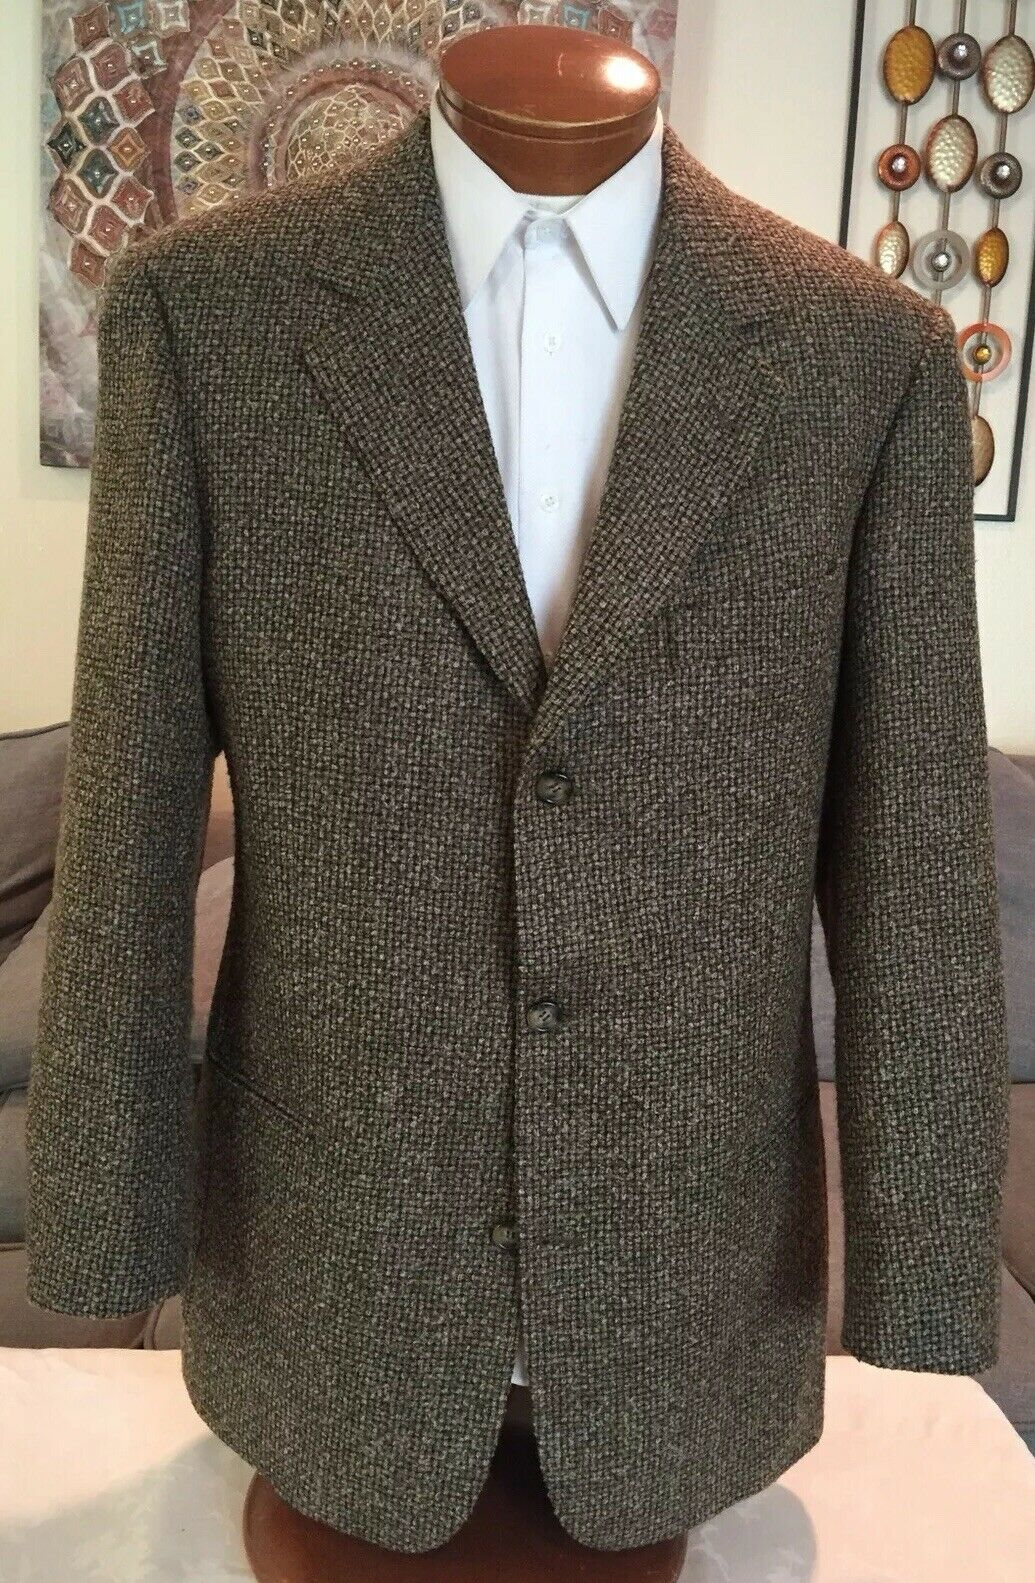 642570392 Boss Mens Brown 3 Button Wool Blazer 42 L MINT Sz Hugo npiysp9153 ...